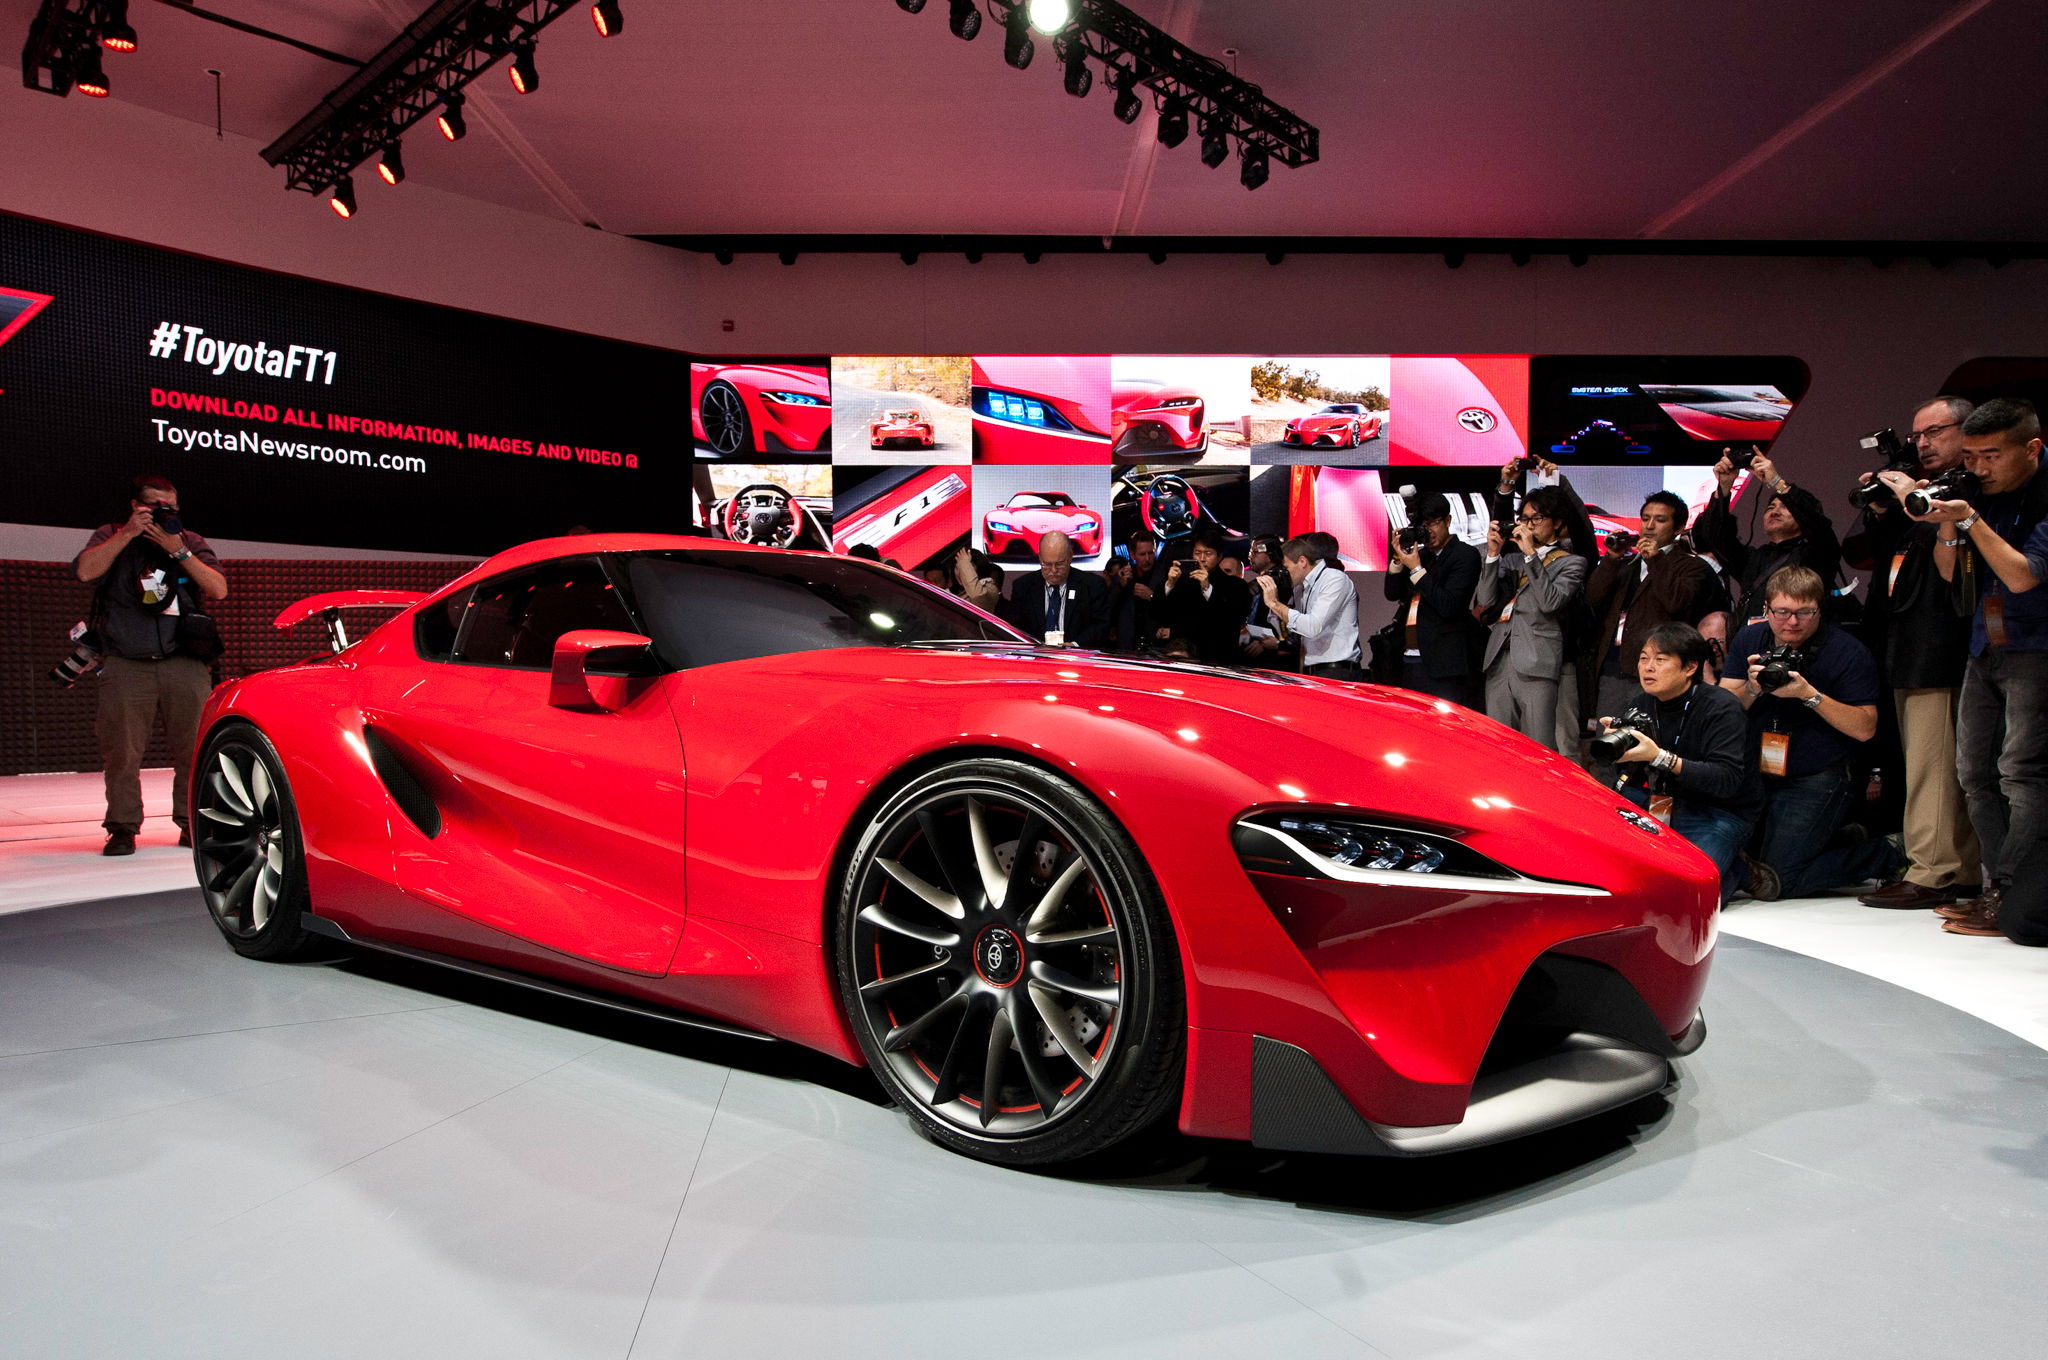 Toyota FT Concept Previews Return Of Supra Motor Trend - Toyota show car